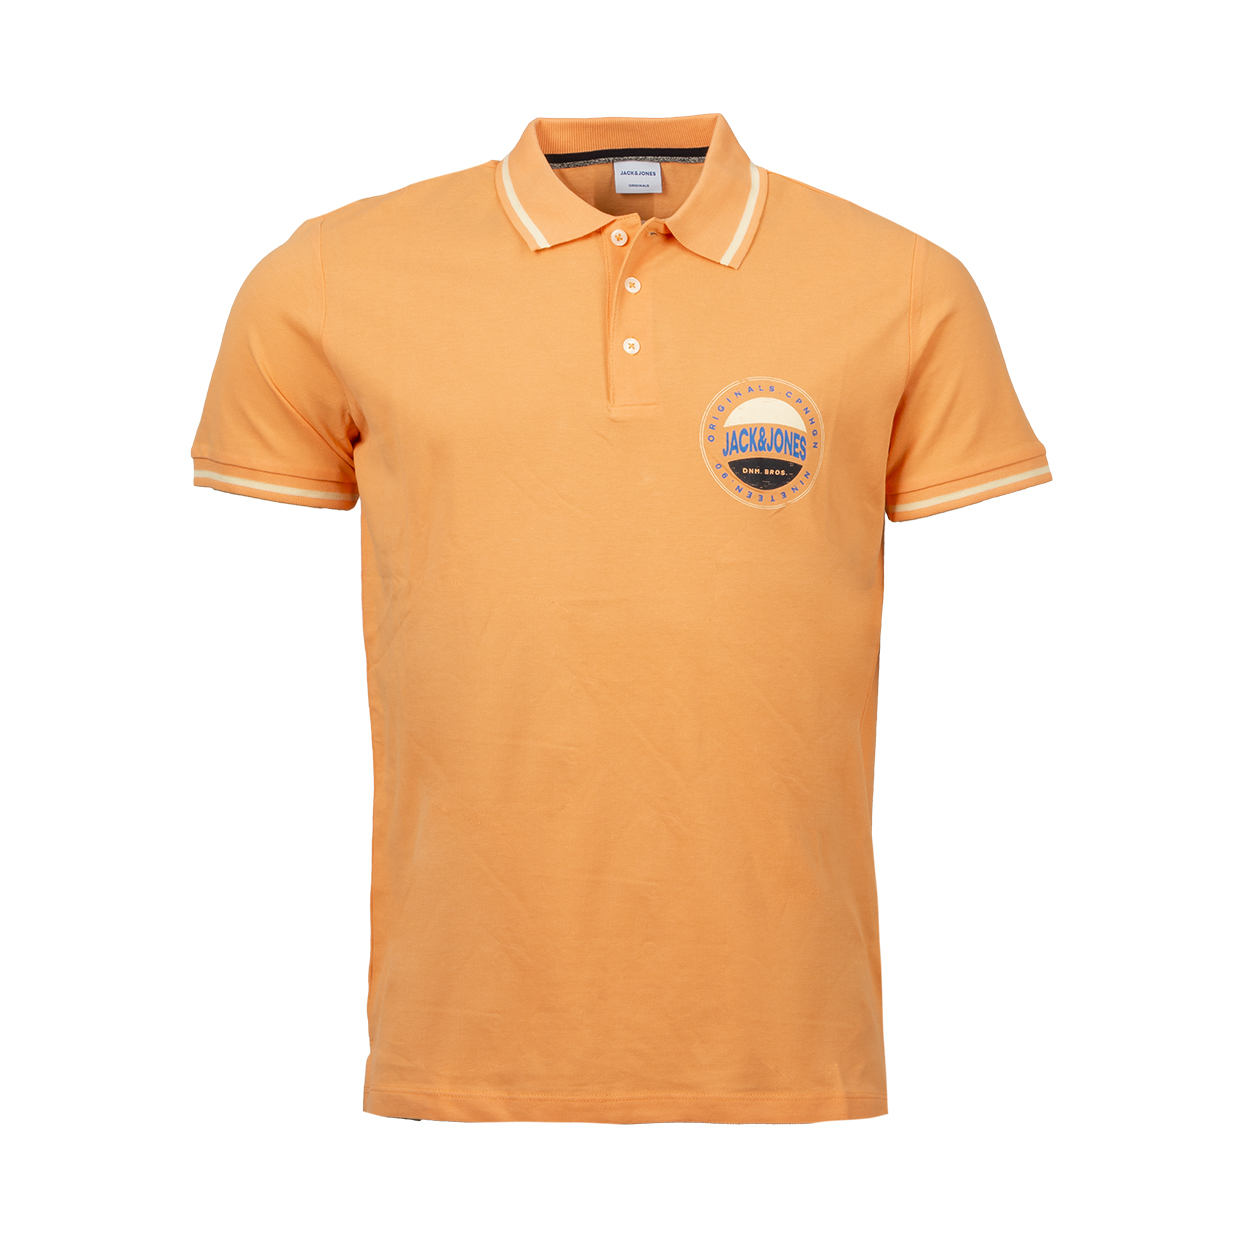 Polo jack and jones jorchristensen en coton corail